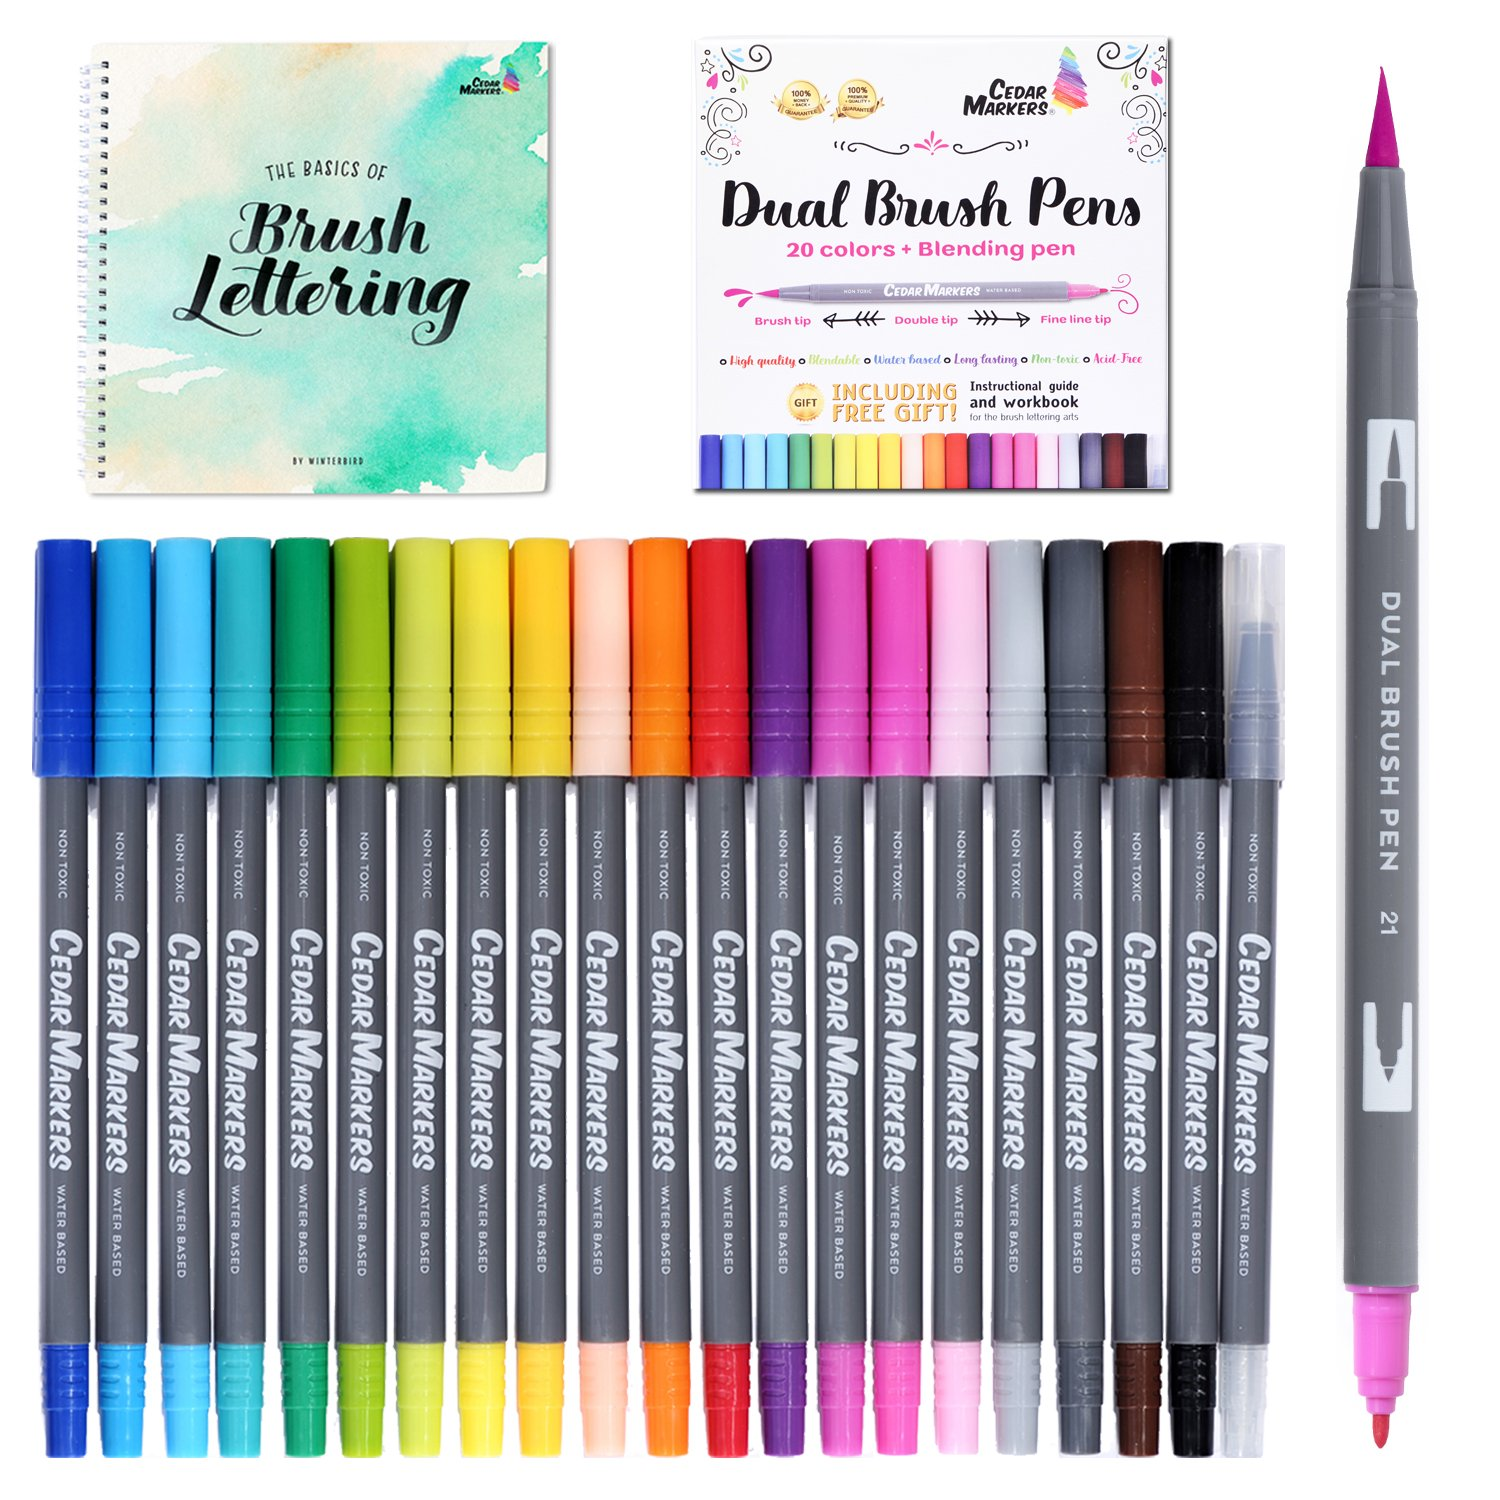 Cedar Markers Dual Brush Pens. 21 Calligraphy Pen Set with Free Hand Lettering Guide Book. Fine Liner and Brush Tip Markers. Colored Pens, Art Pens for Adult Coloring Book and Bullet Journal. (21 XL)